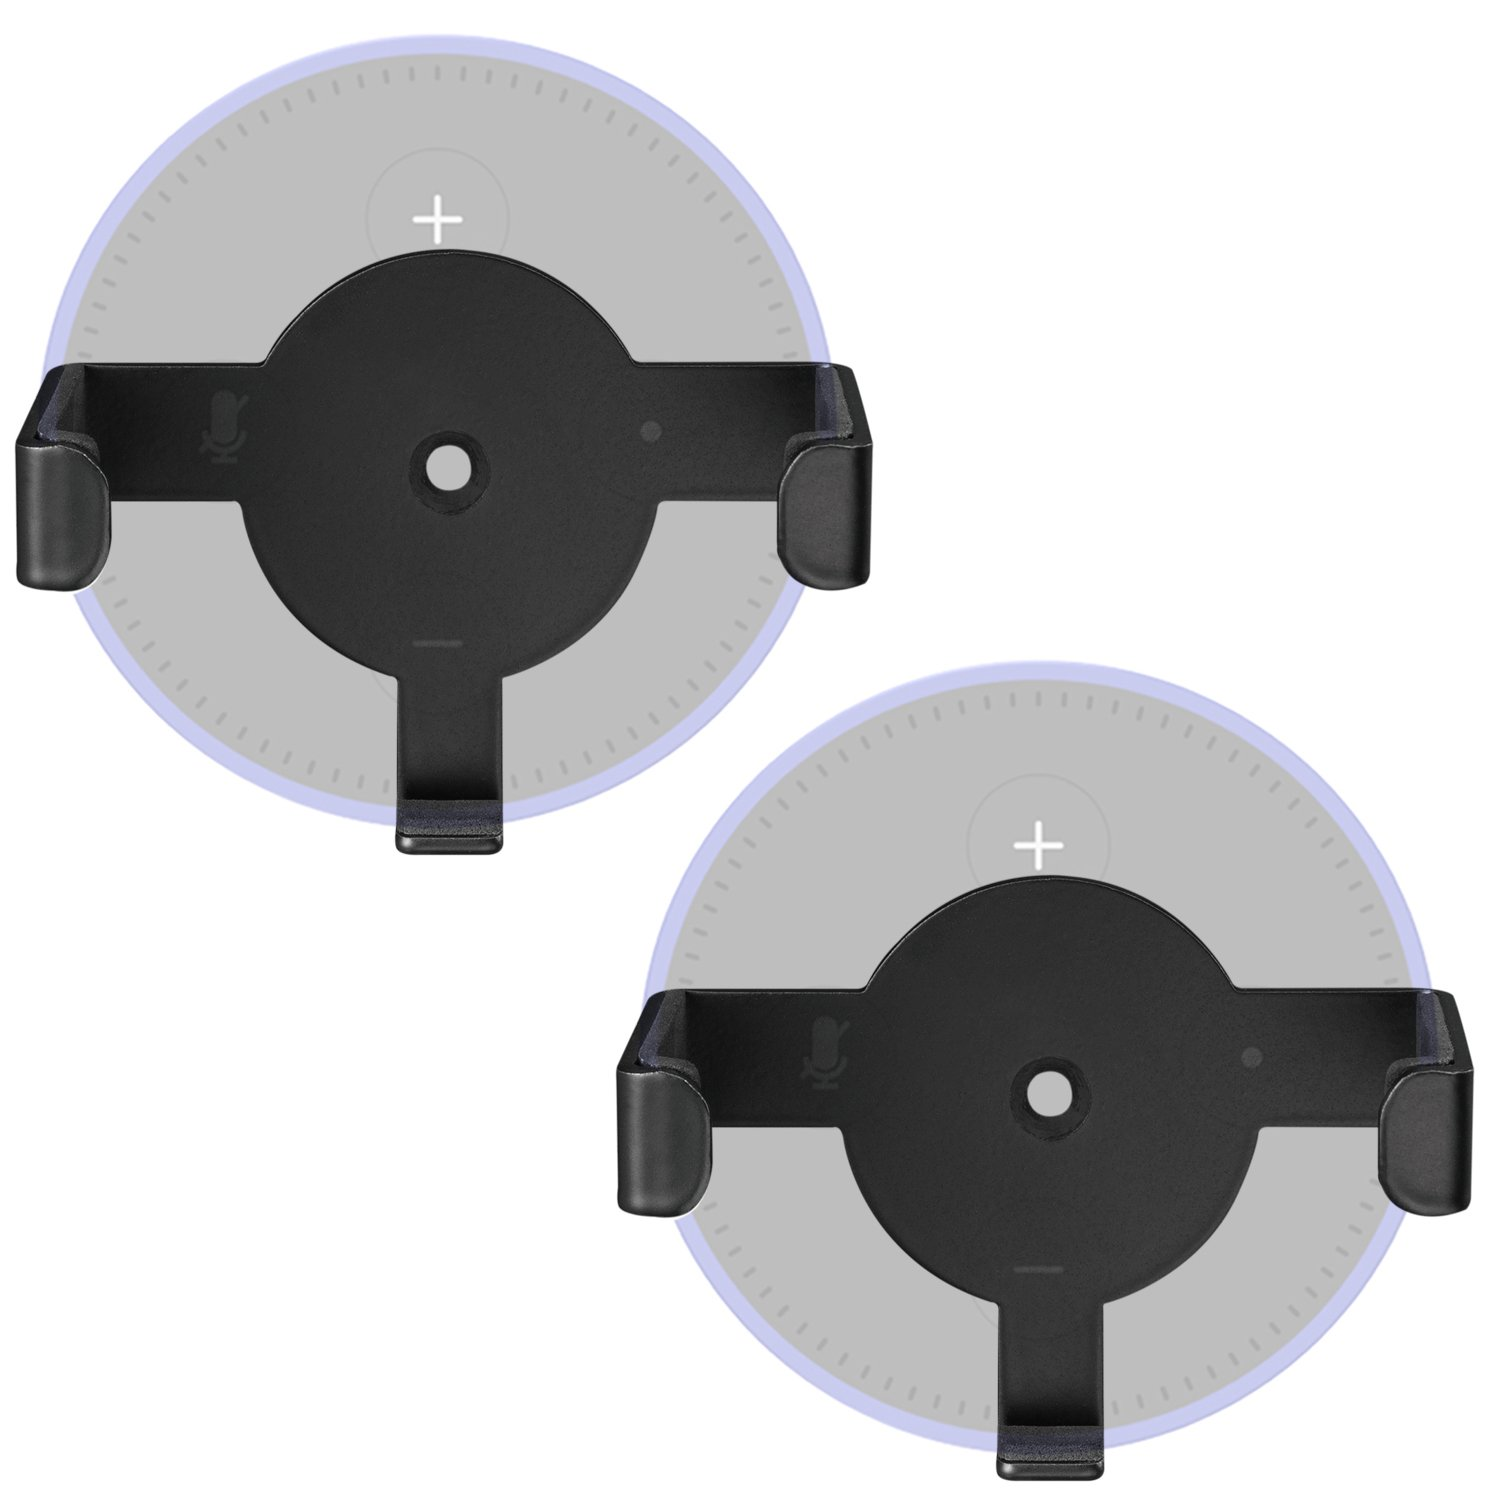 WALI Universal Metal Wall Mount Holder Bracket Case Stand for Dot 2nd Generation and Other Voice Assistants (SWM-EH-02B), 2 Packs, Black